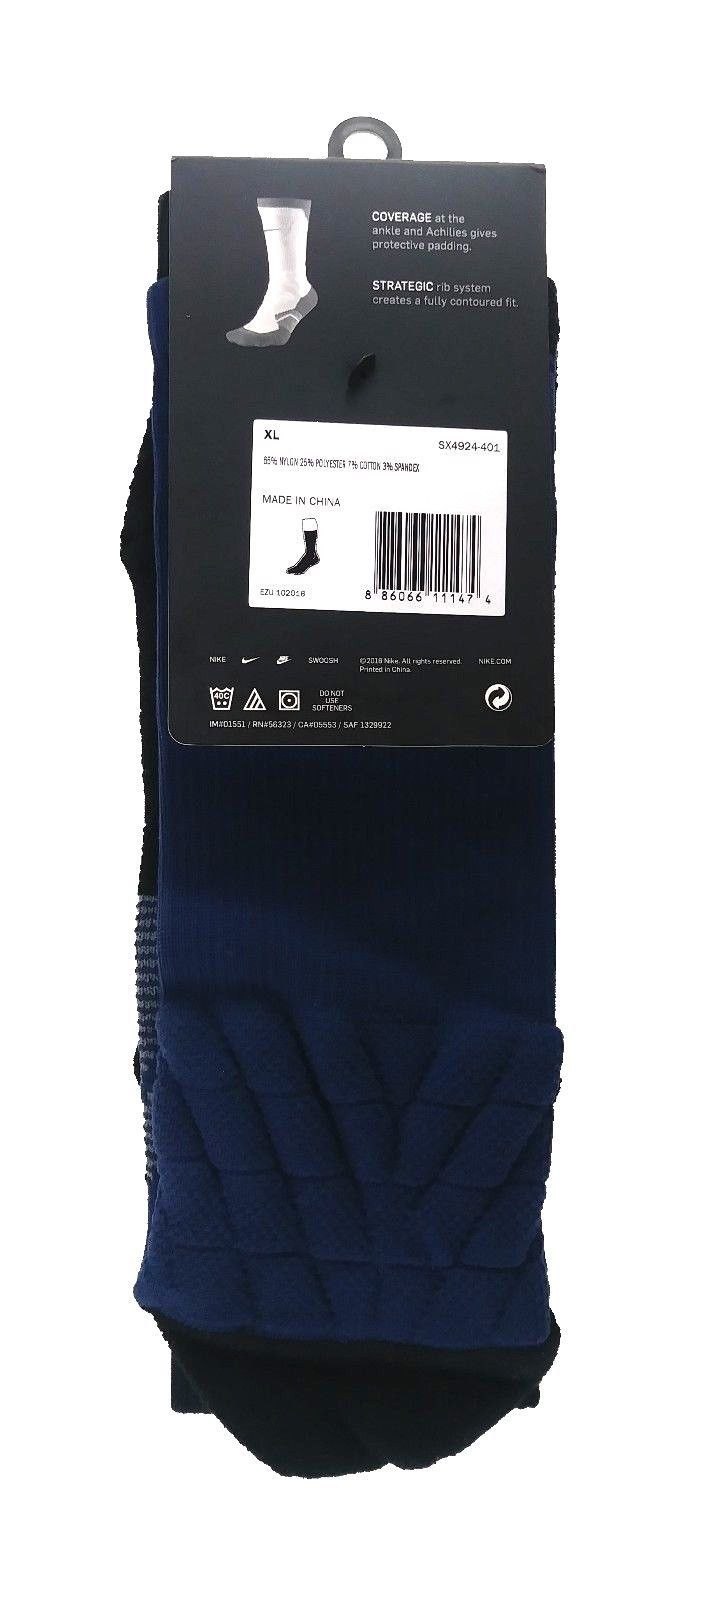 NIKE Elite Vapor Crew Dri-Fit Socks sz XL Extra Large (12-15) Dark Blue